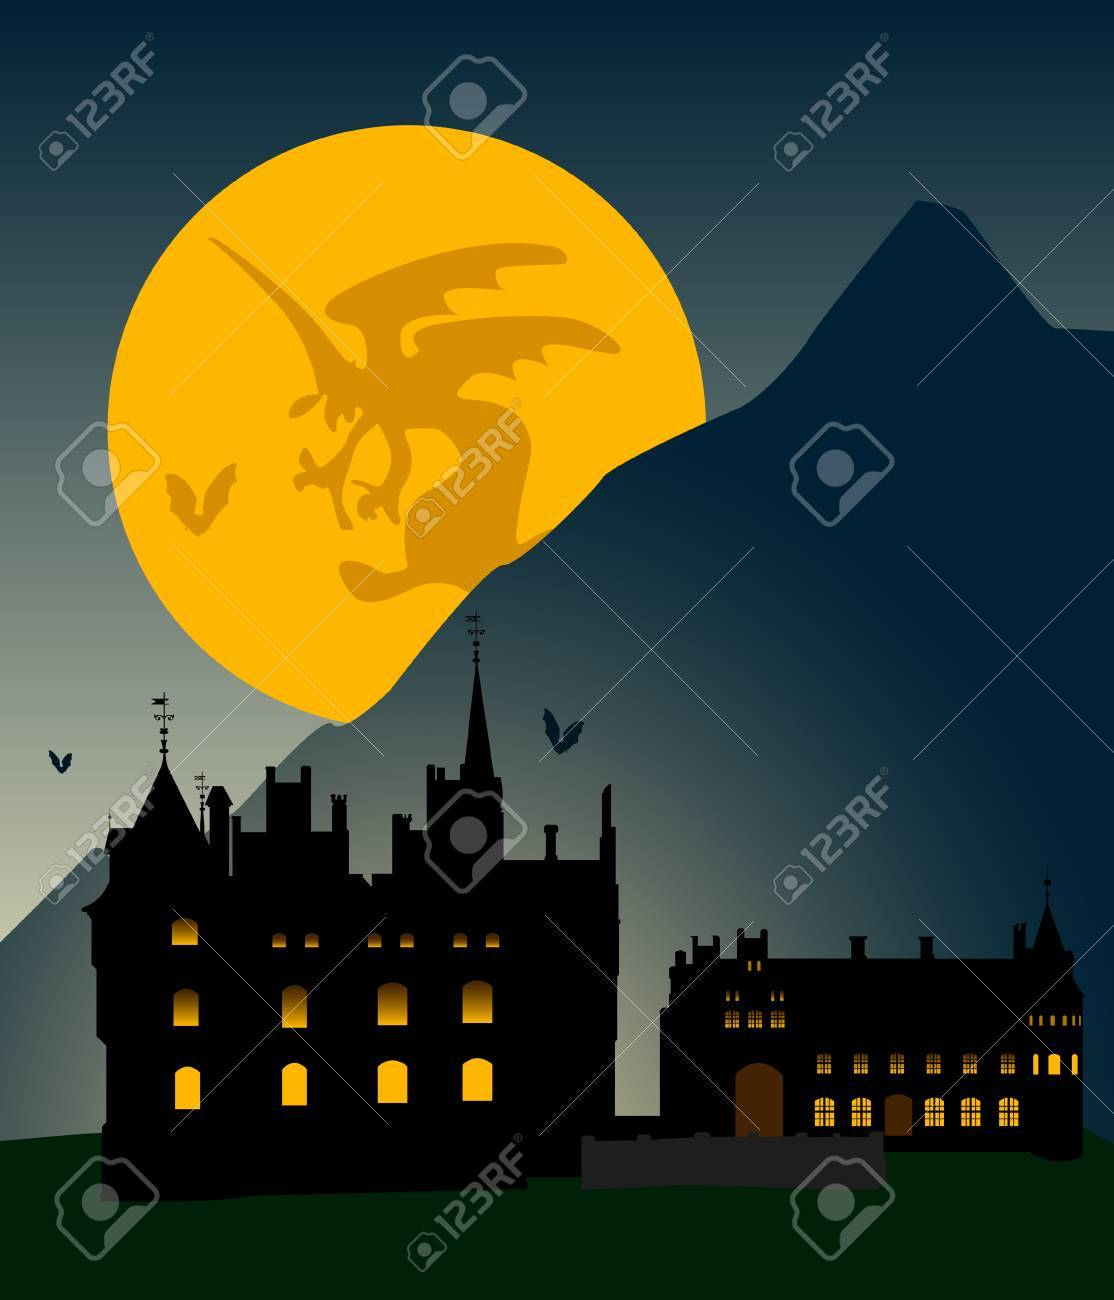 Castle silhouette in mountains against the full moon. Halloween. Stock Vector - 3664898